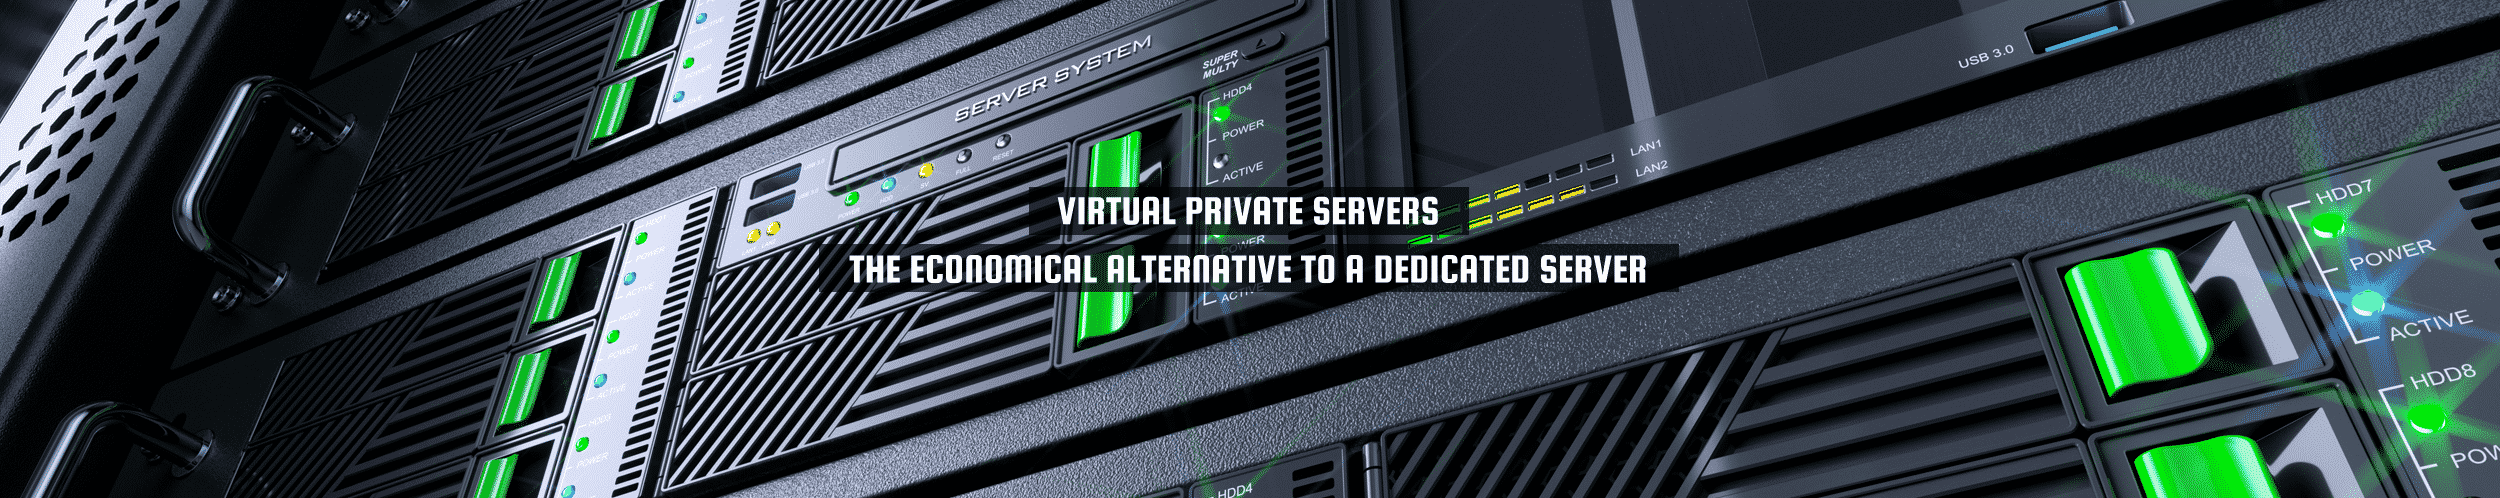 "52Degrees Virtual Hosting - feature image | ""virtual private servers - het economische alternatief voor een dedicated server"" 